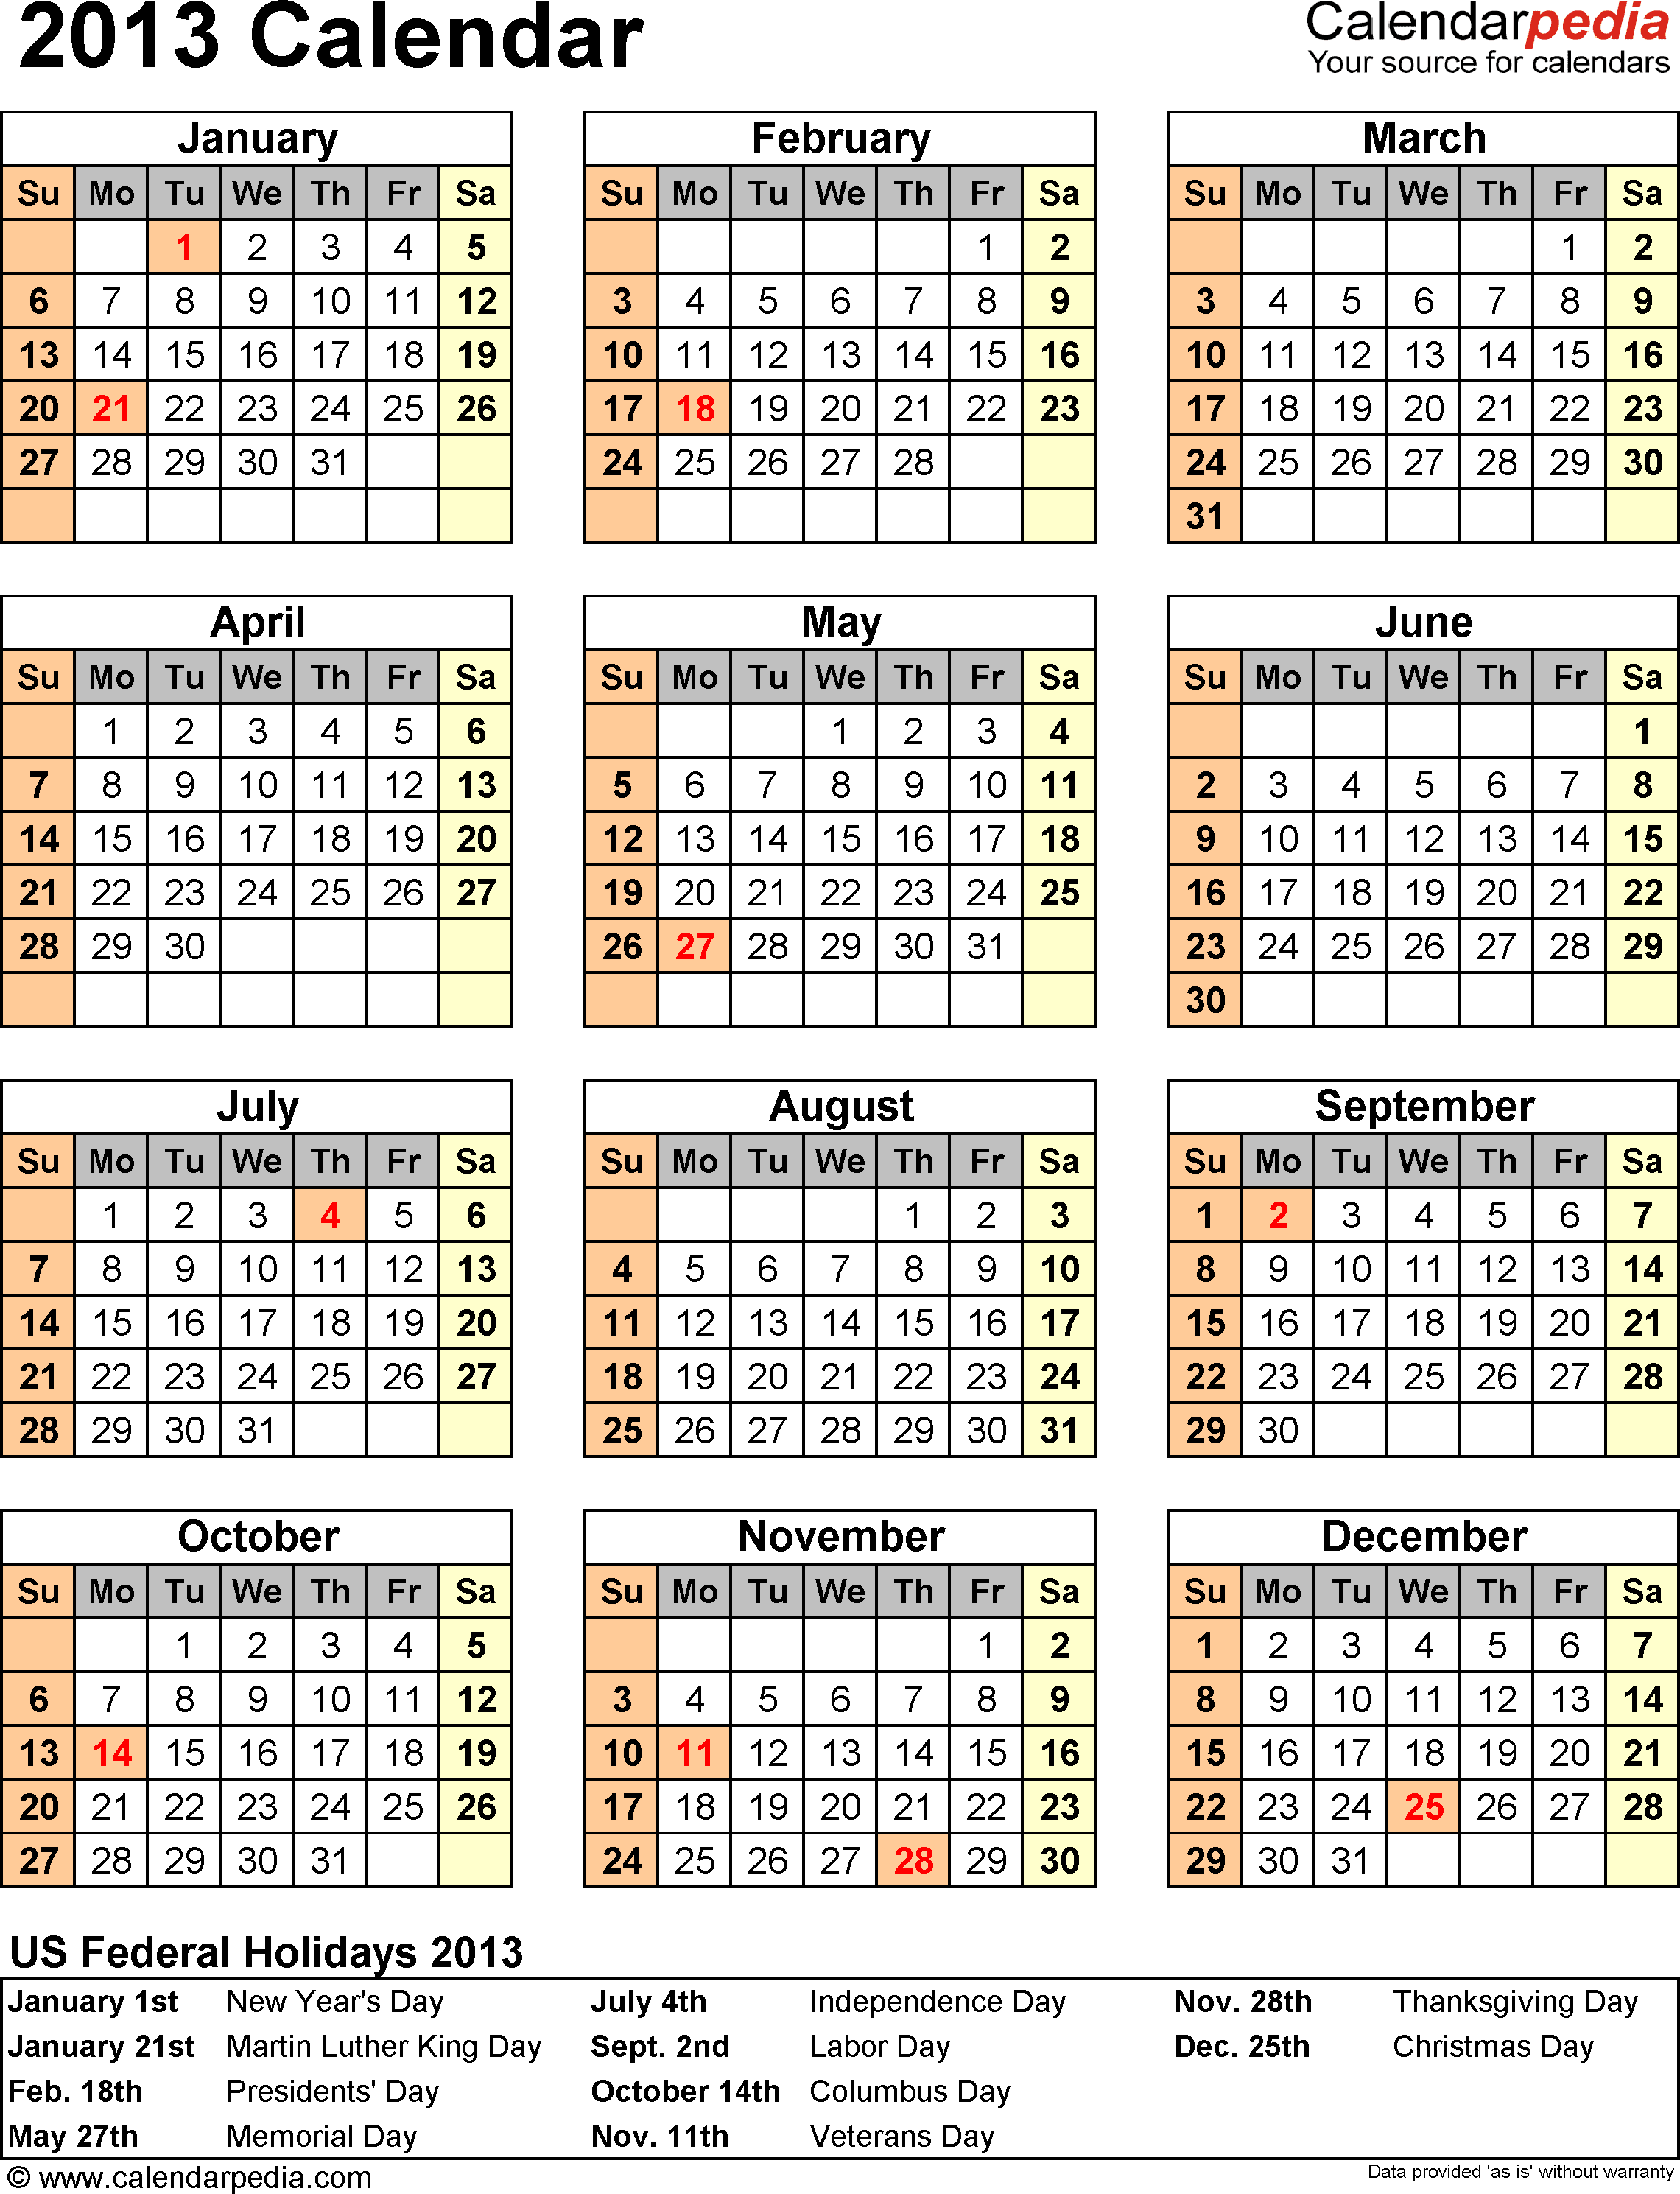 Download Word template for 2013 calendar template 11: portrait orientation, 1 page